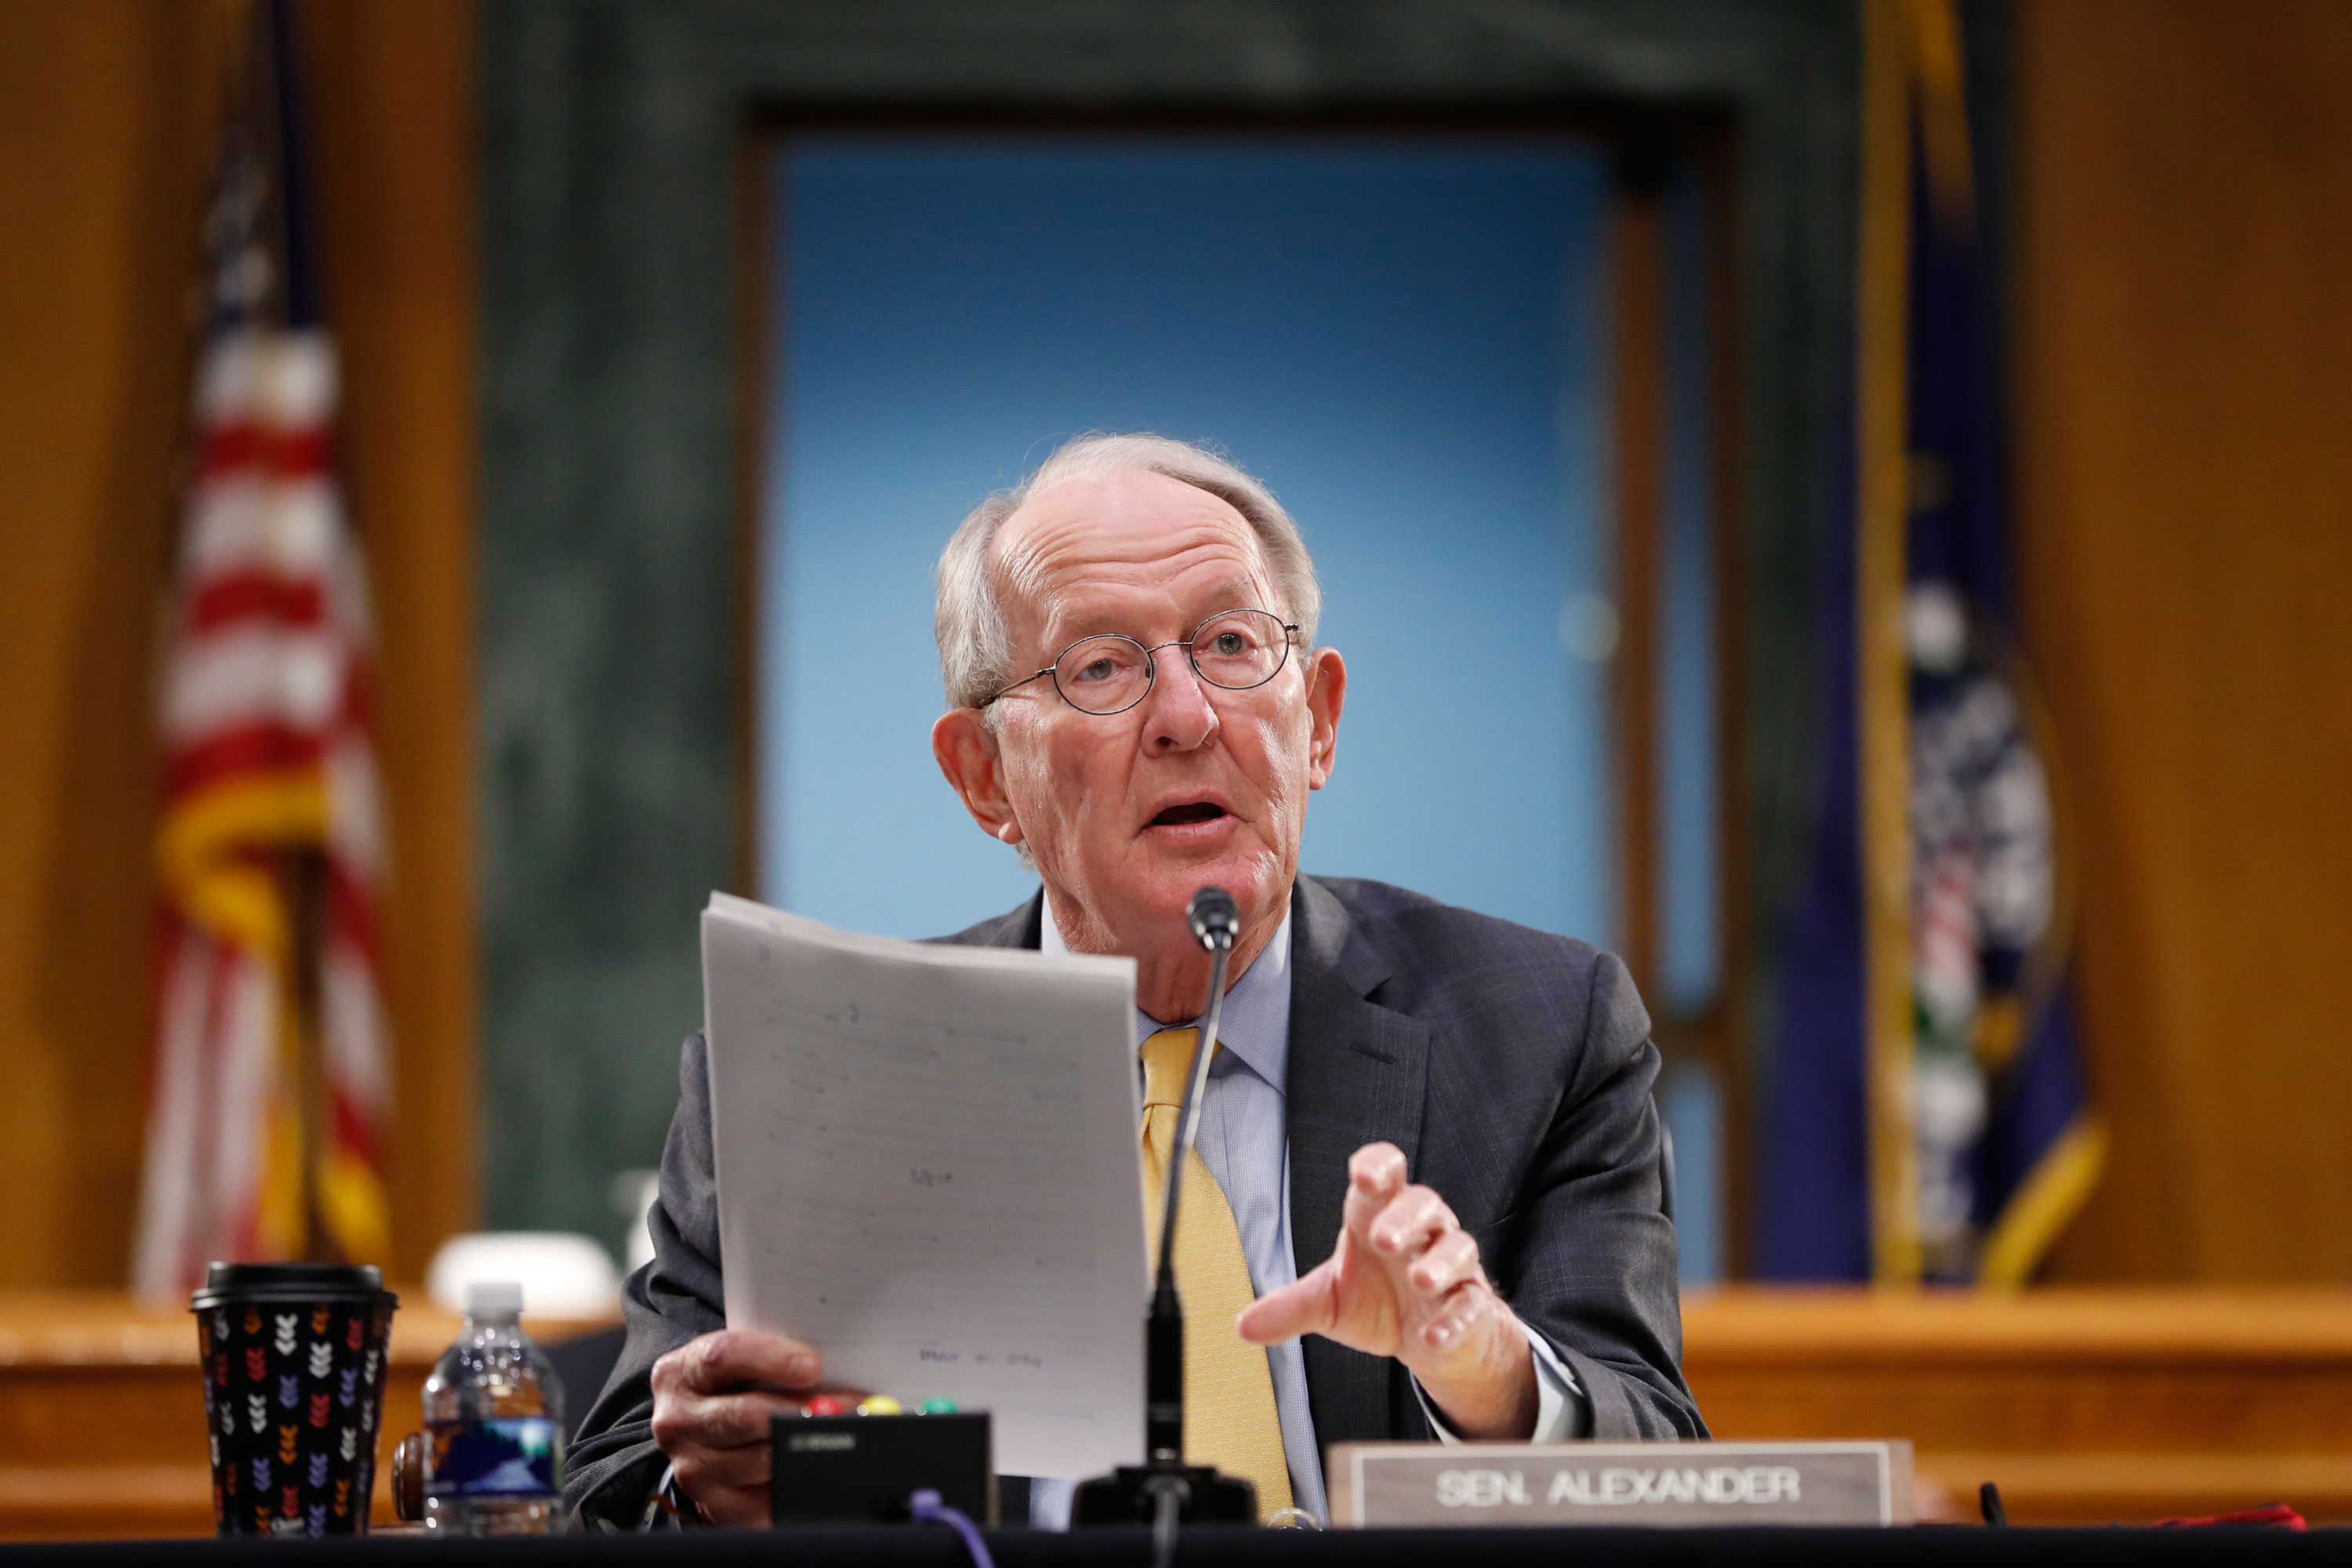 Sen. Lamar Alexander gives his opening statement during a Senate Health Education Labor and Pensions Committee hearing on new coronavirus tests on Capitol Hill on May 7, in Washington.